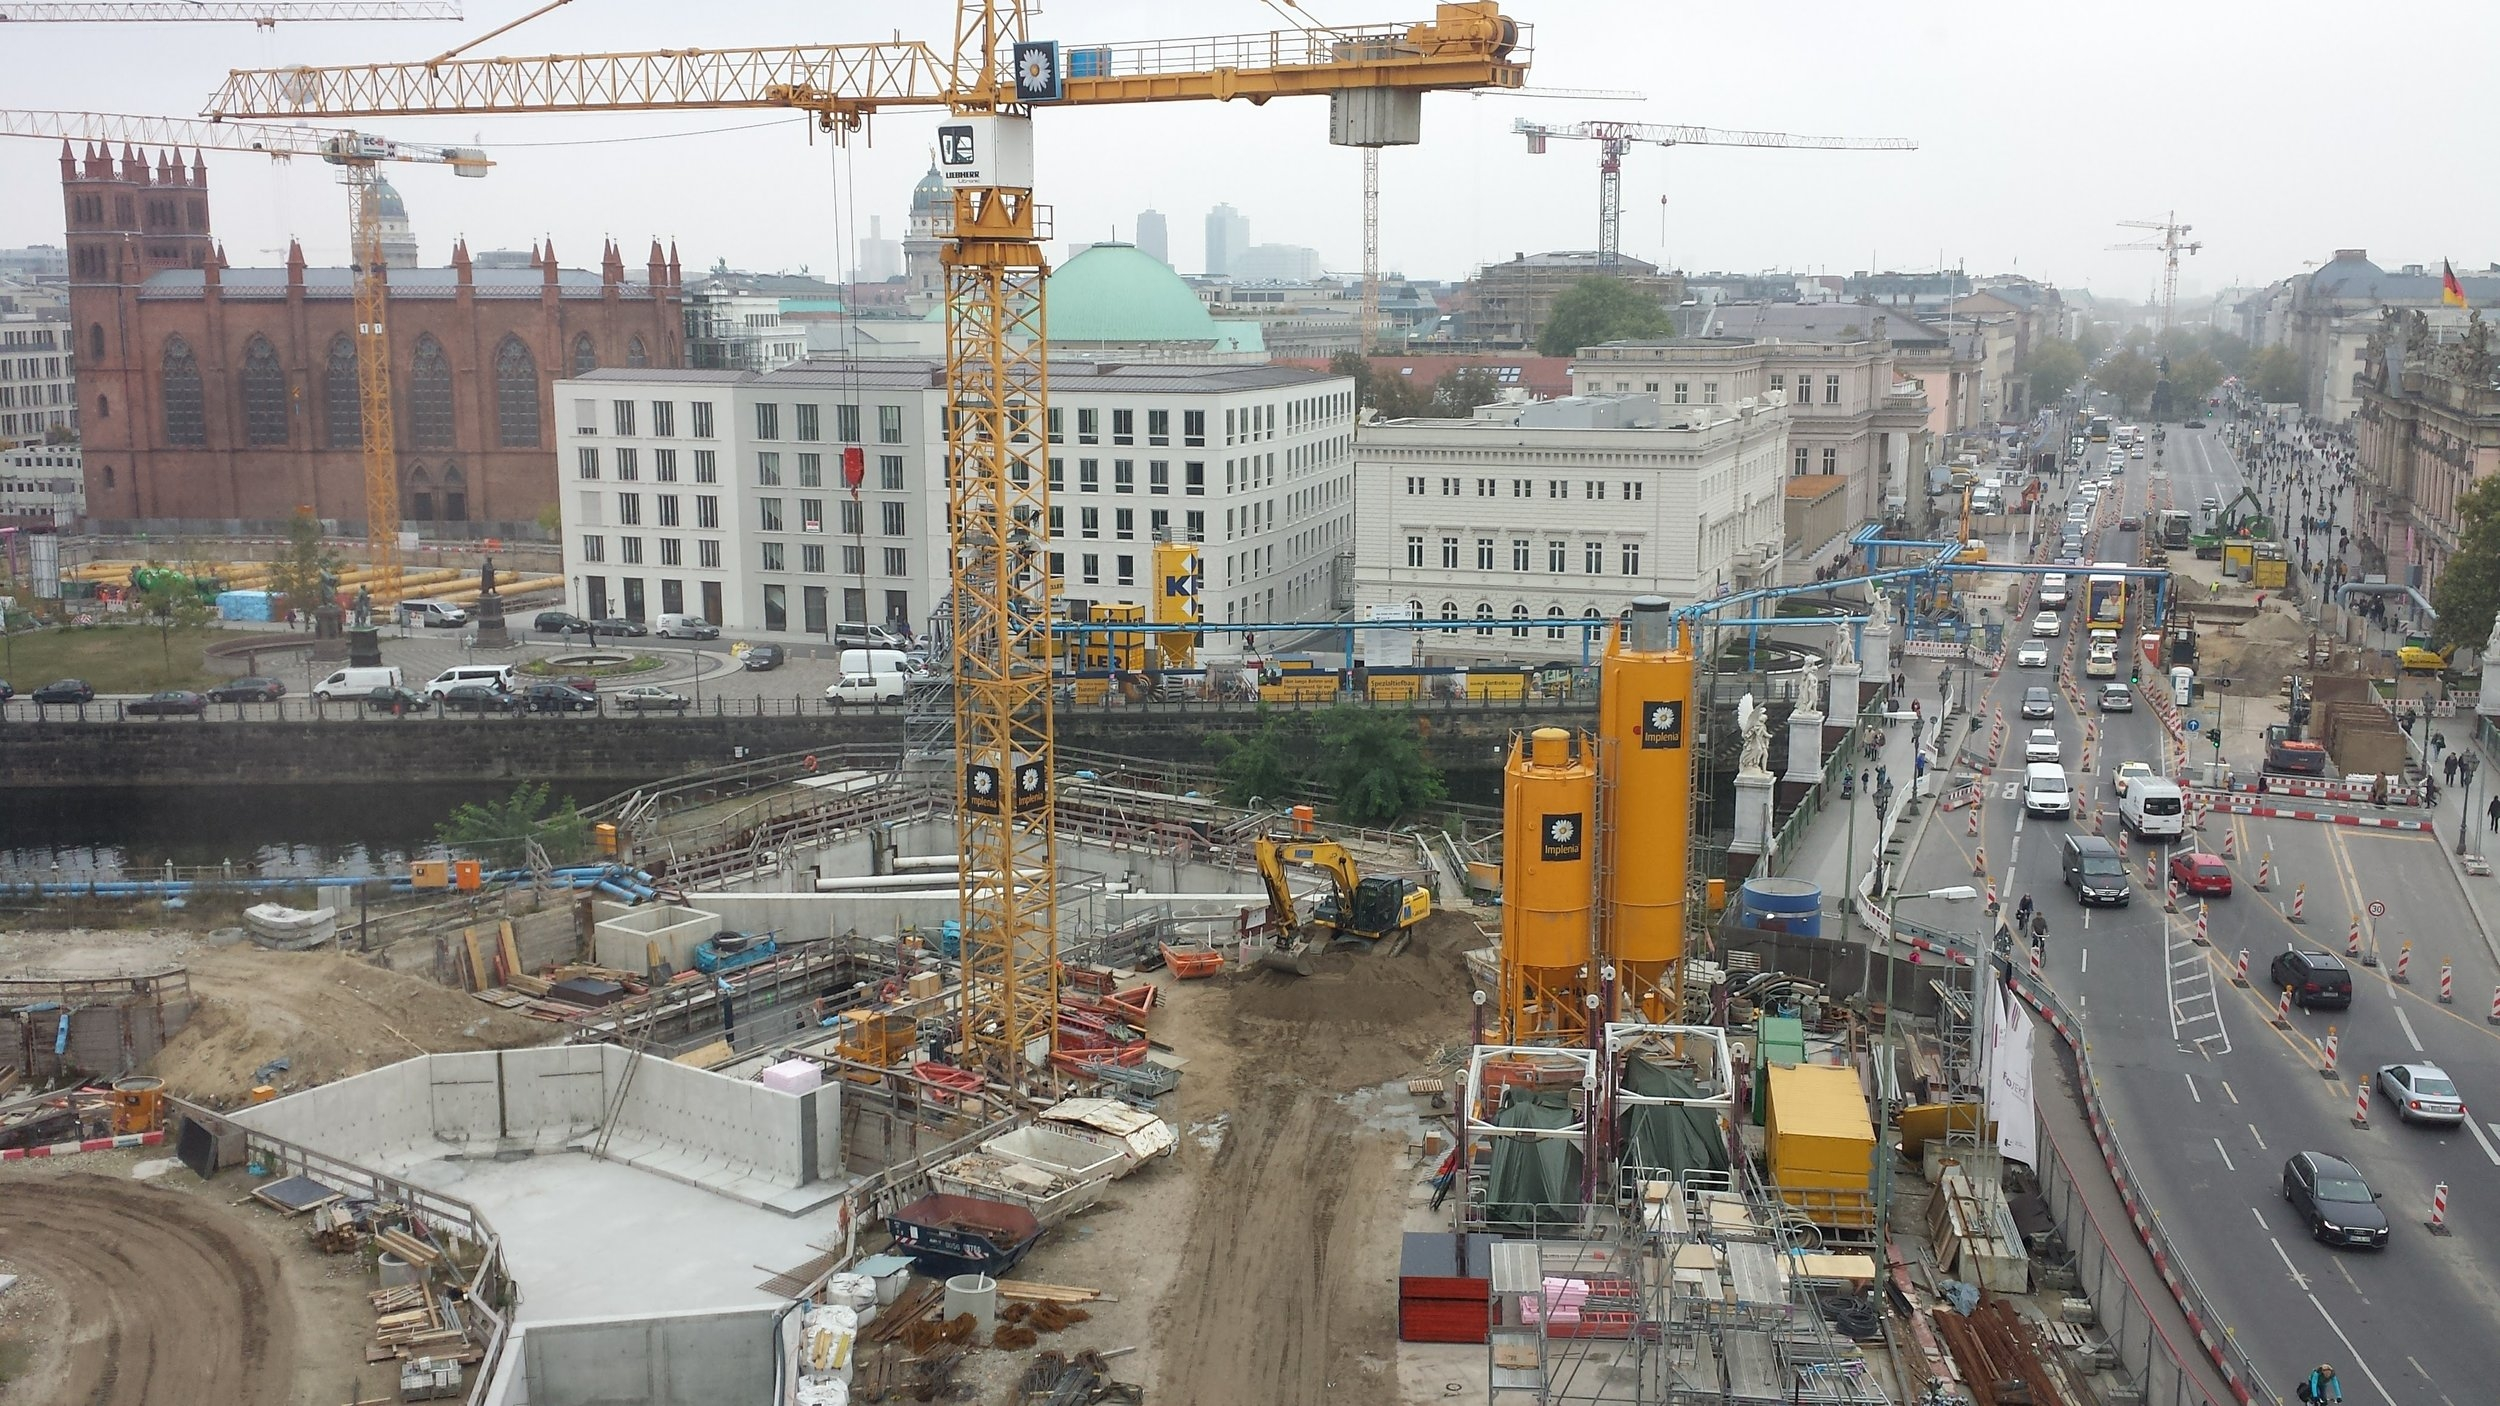 Rebuilding the Stadtschloss